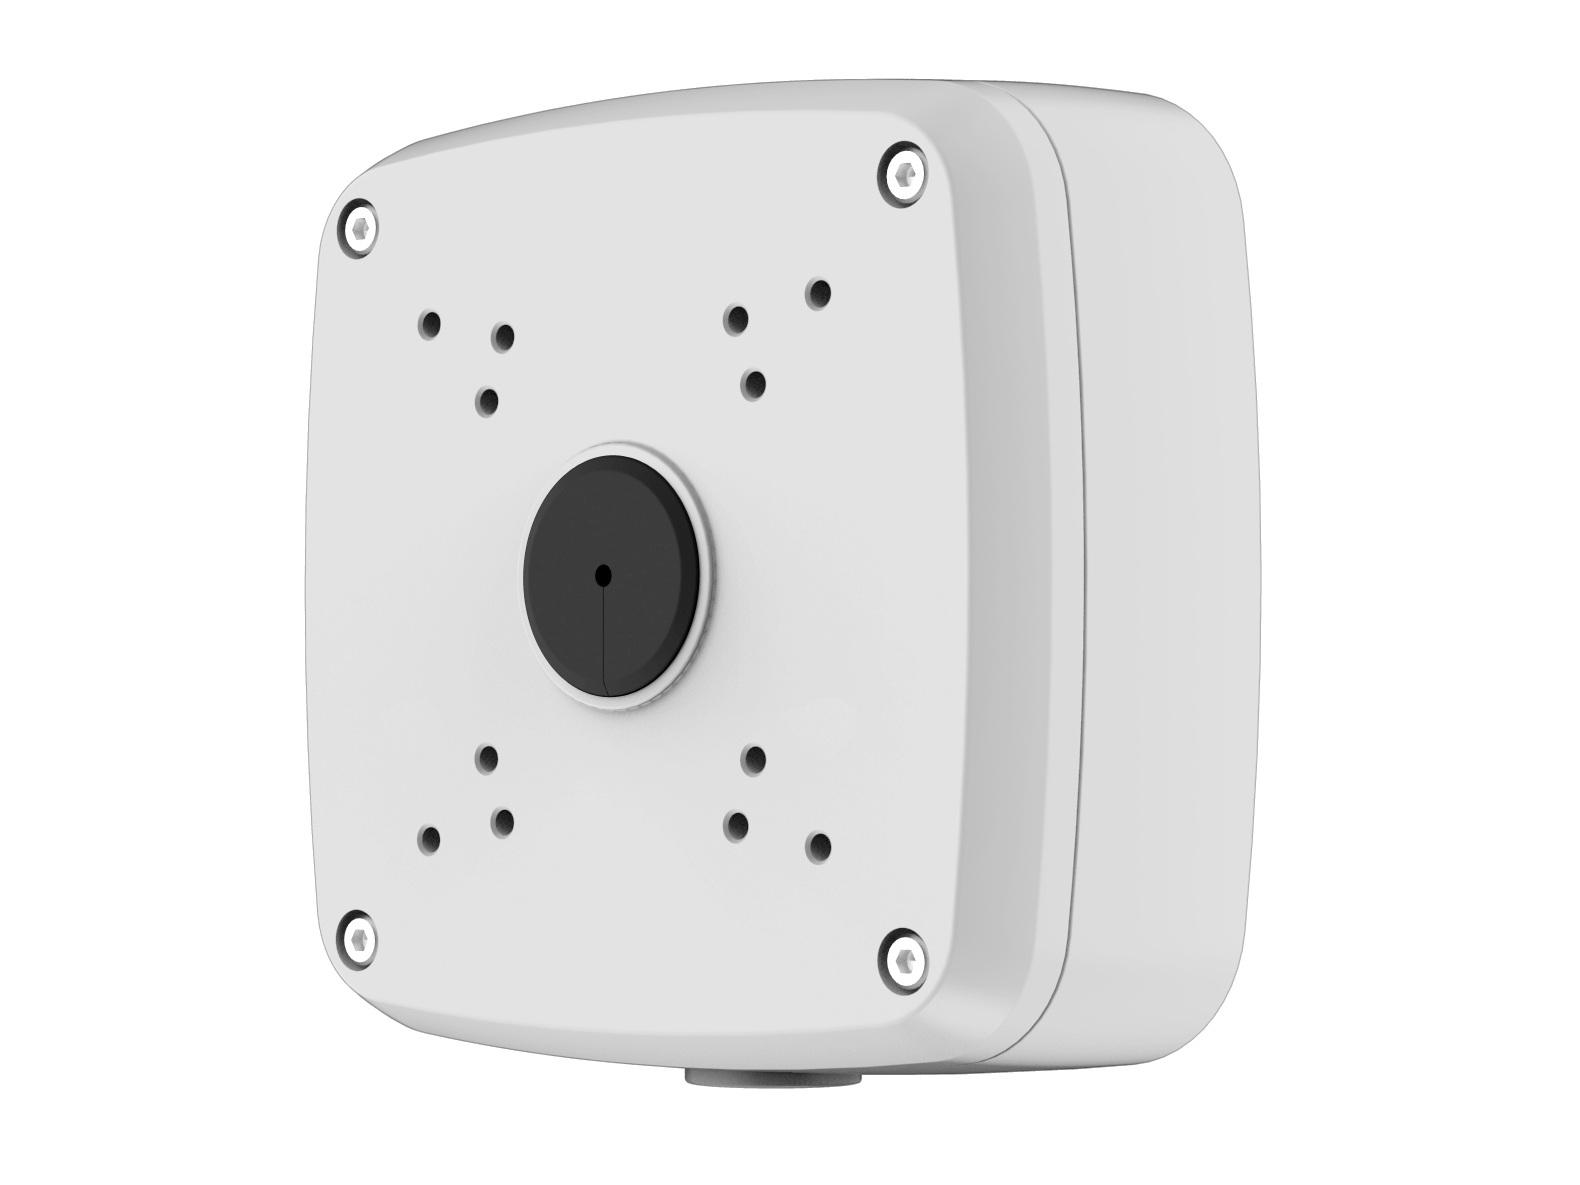 ICRealtime MNT-JUNCTION BOX 4 Square Junction Box For Ip Base Bullet Cameras